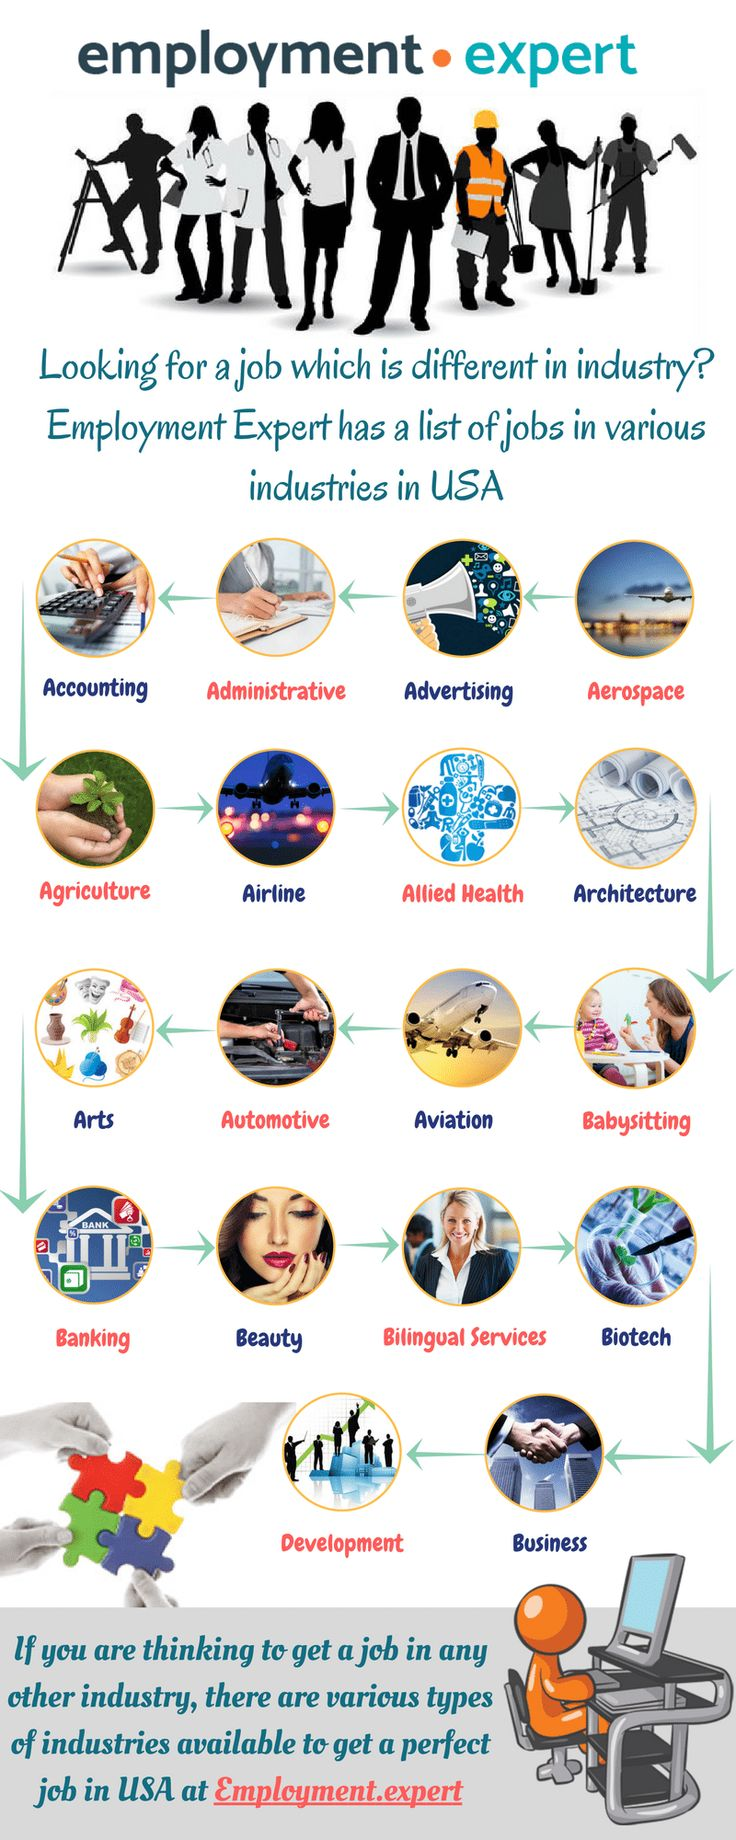 Search for Jobs in Different Industries at Employment